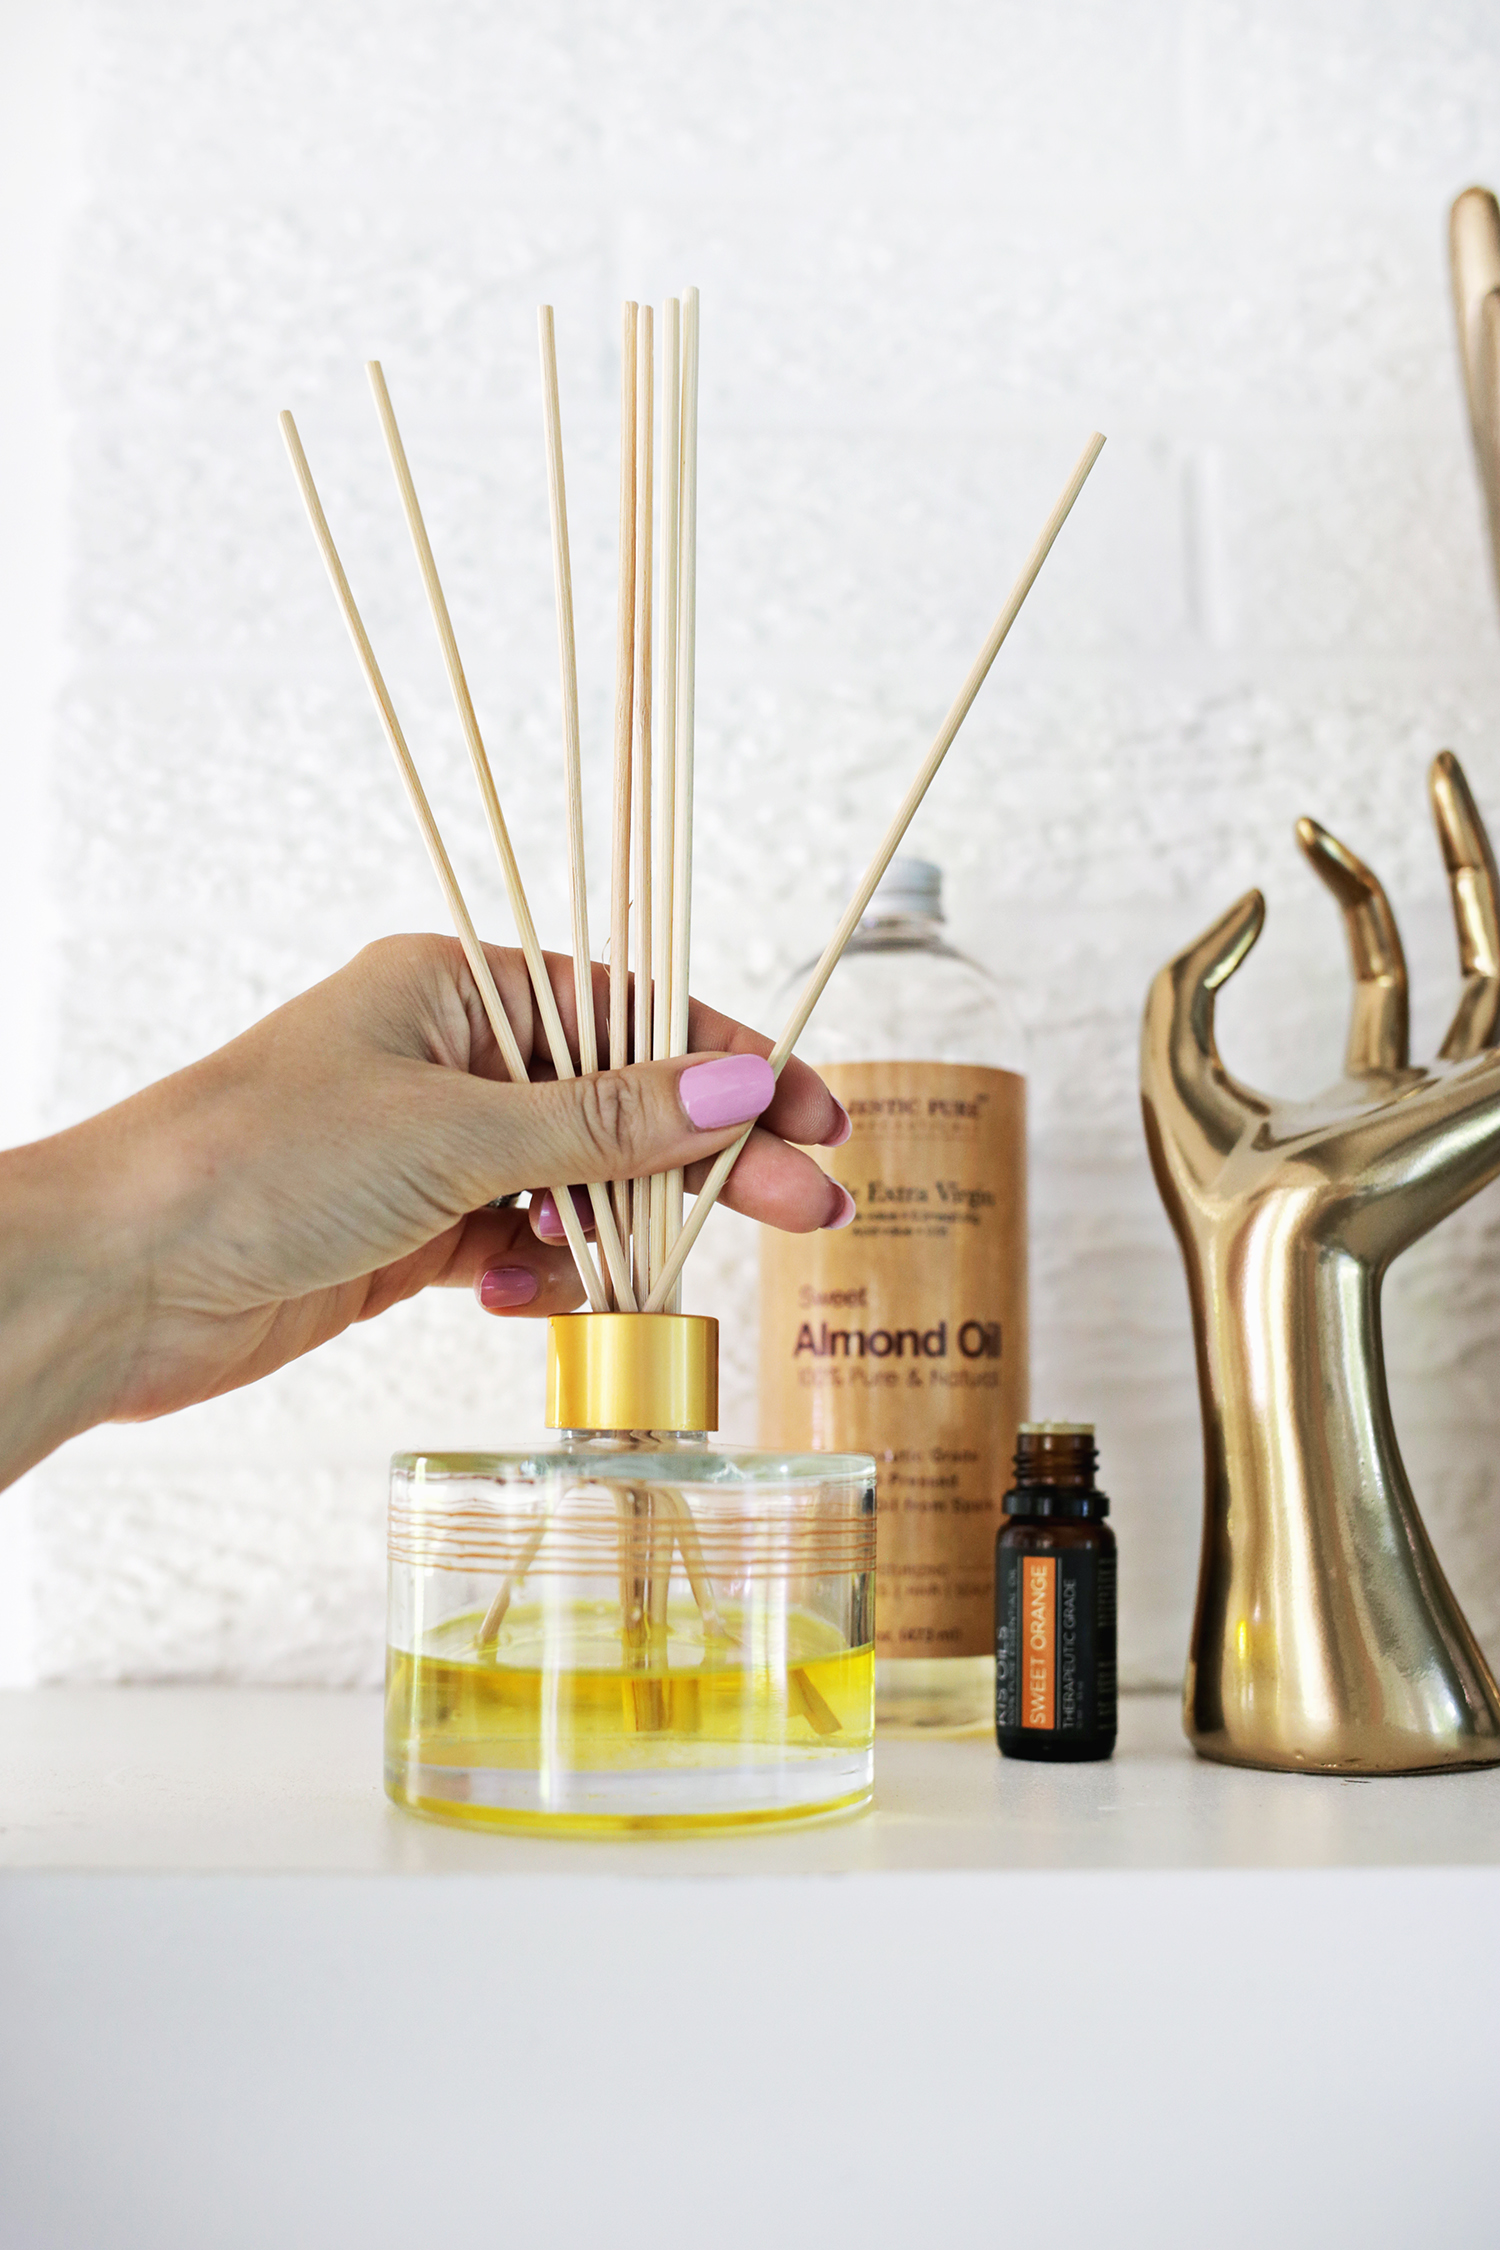 Make your own essential oil diffuser! (click through for tutorial)